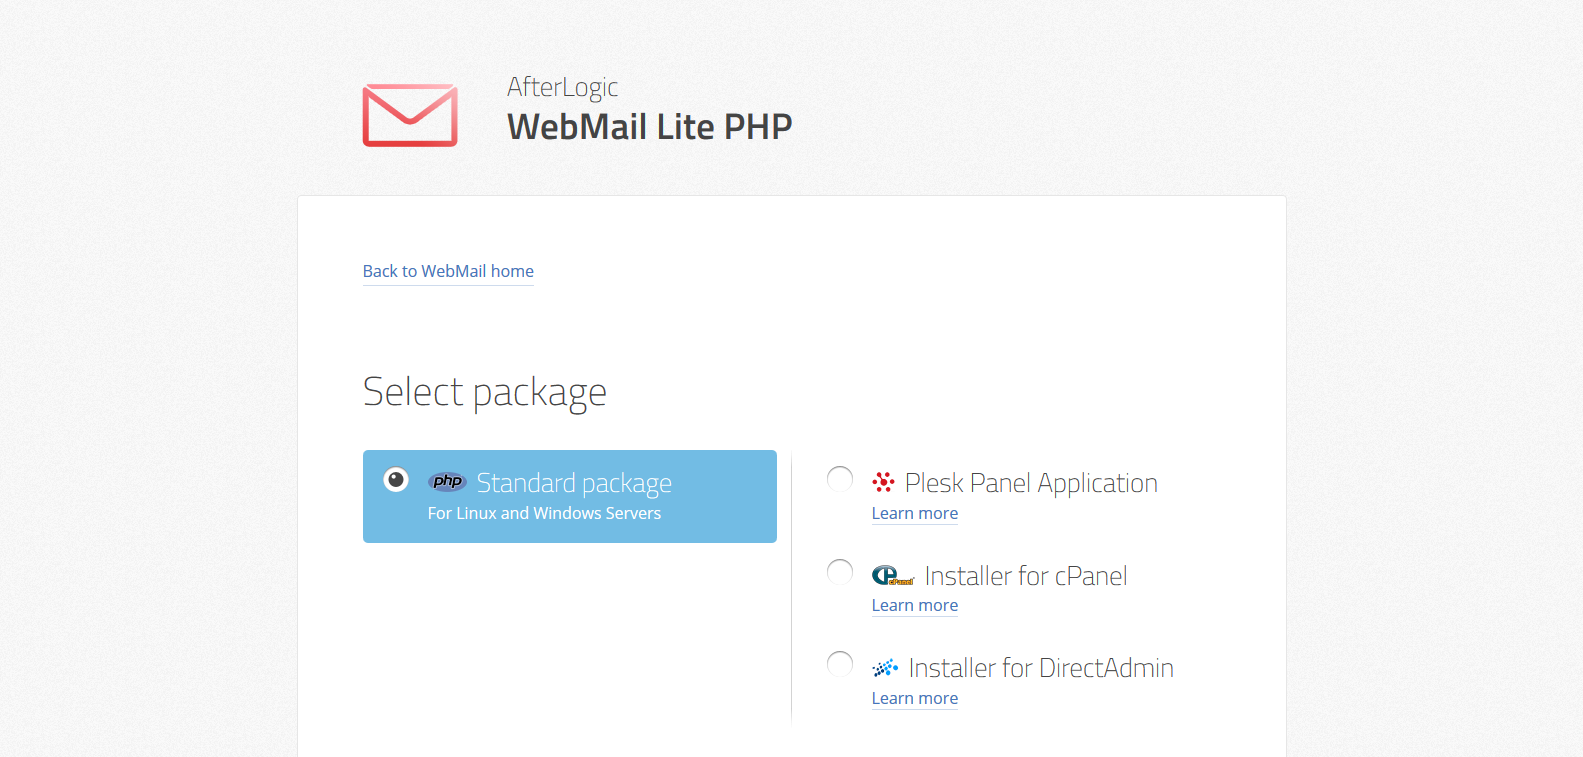 Come installare Afterlogic Webmail